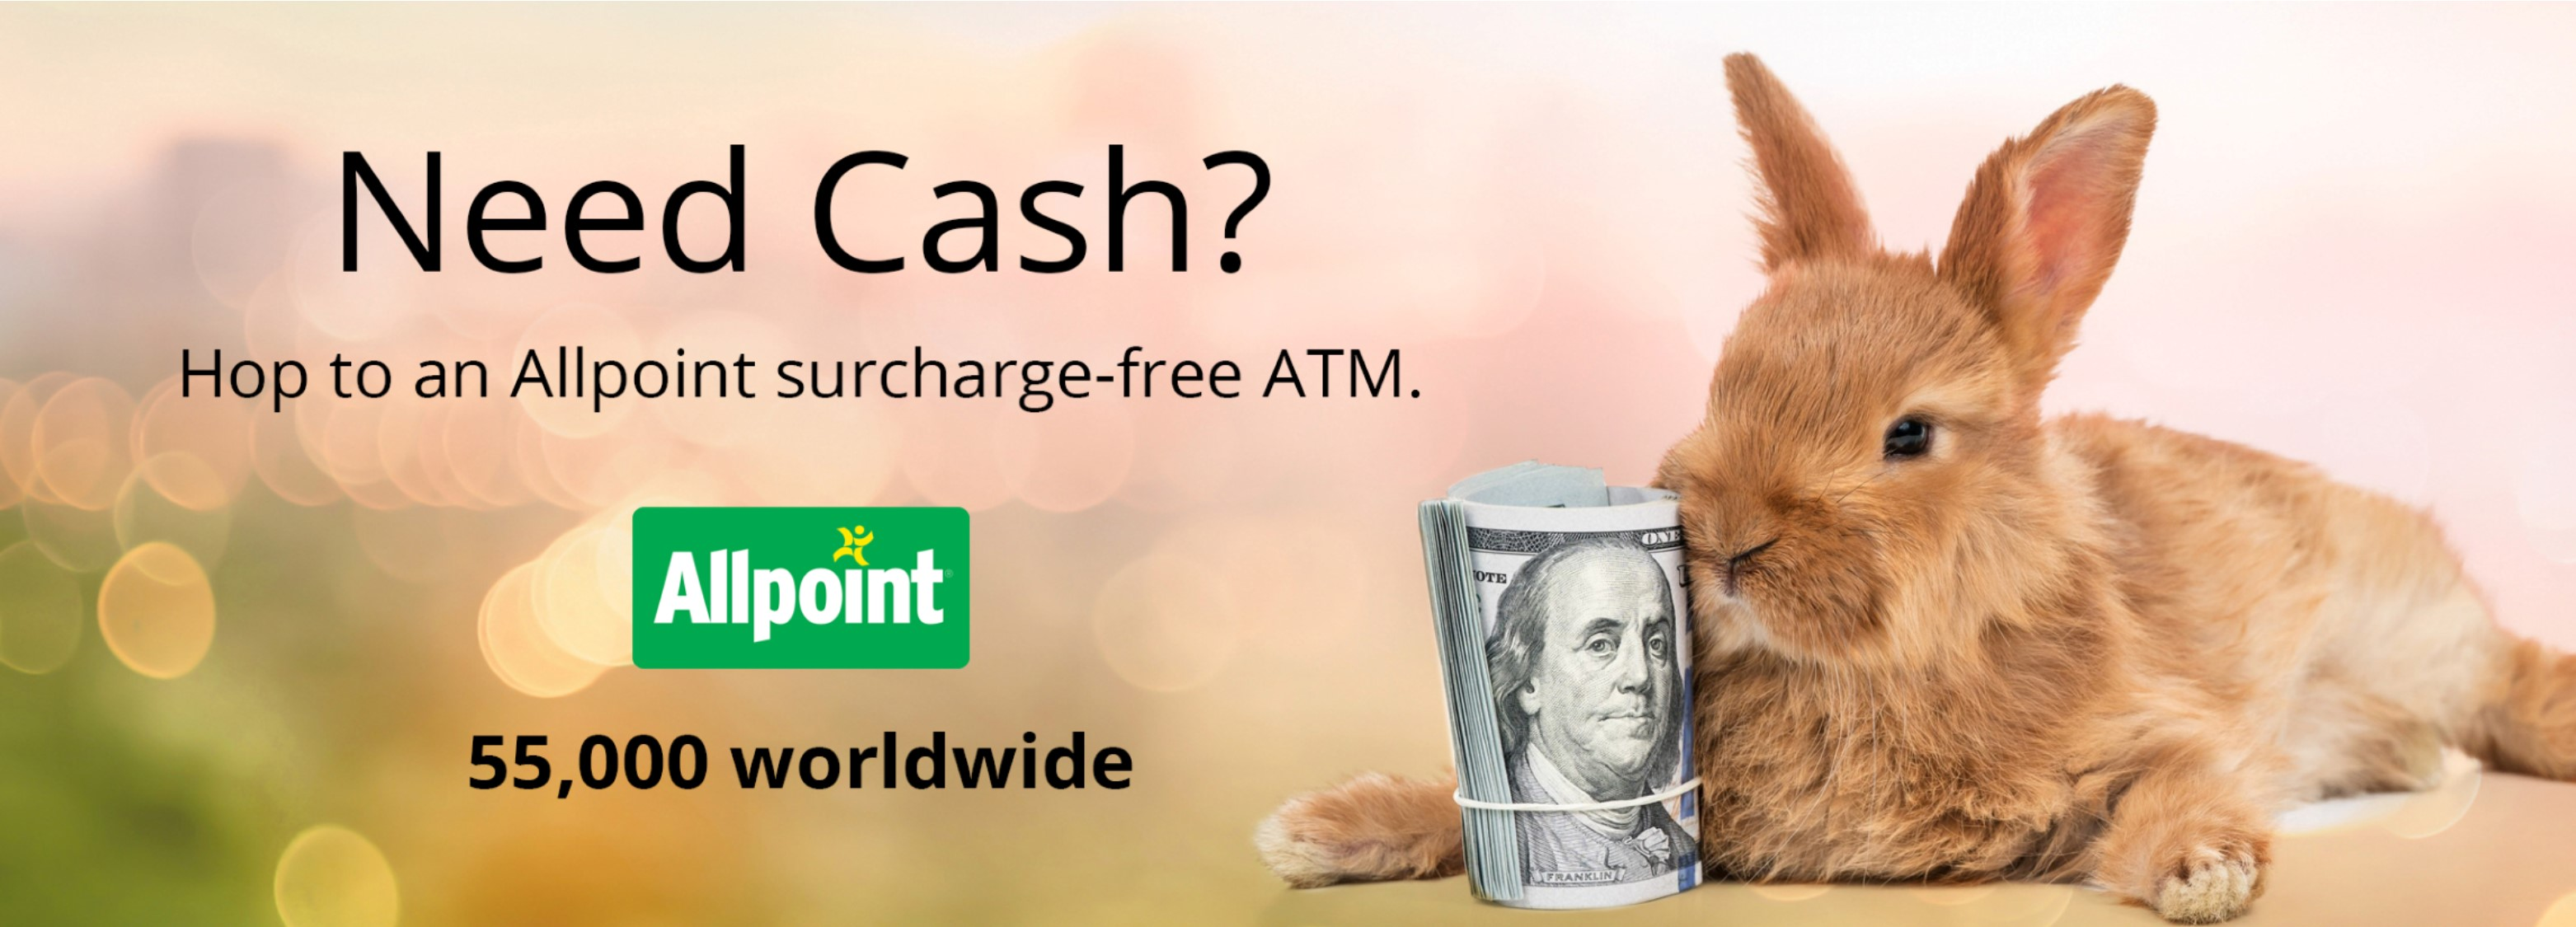 Members have access to 55,000 surcharge-free ATMs with the Allpoint network. Visit https://www.allpointnetwork.com/ to find an ATM today.